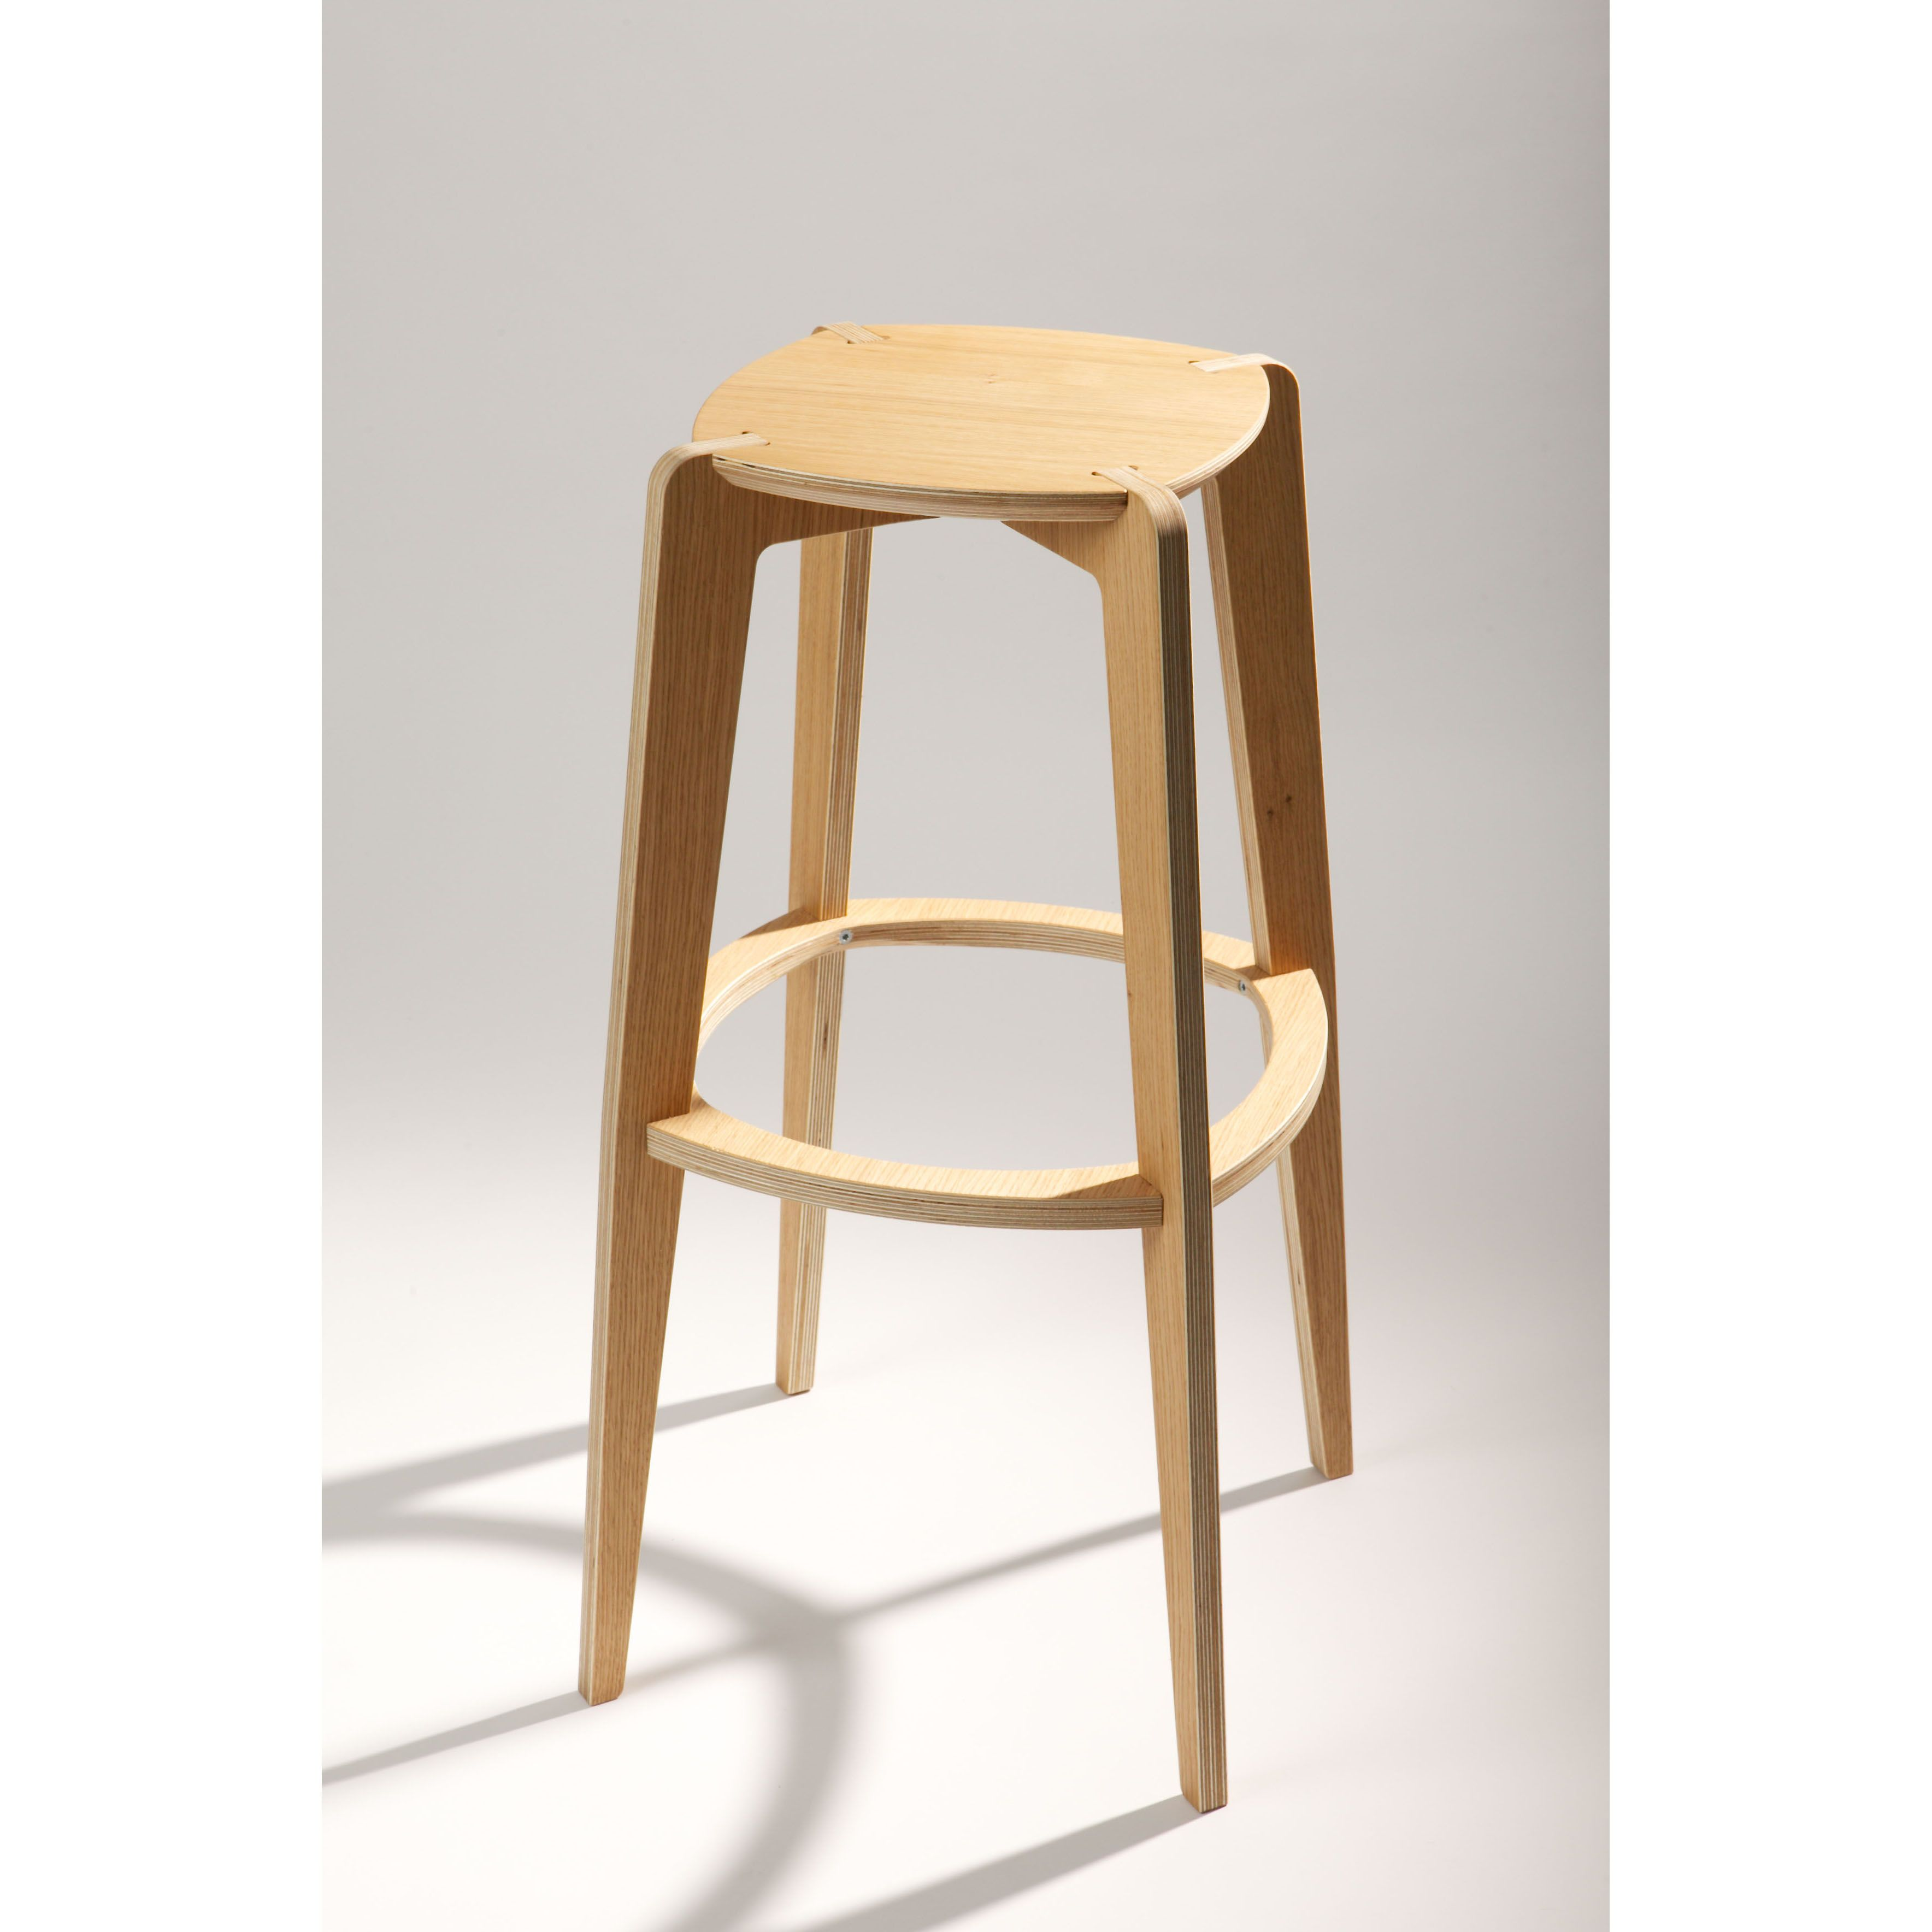 Incredible Bar Stool The Bar Stool Is Made Of Moisture Resistant High Gmtry Best Dining Table And Chair Ideas Images Gmtryco